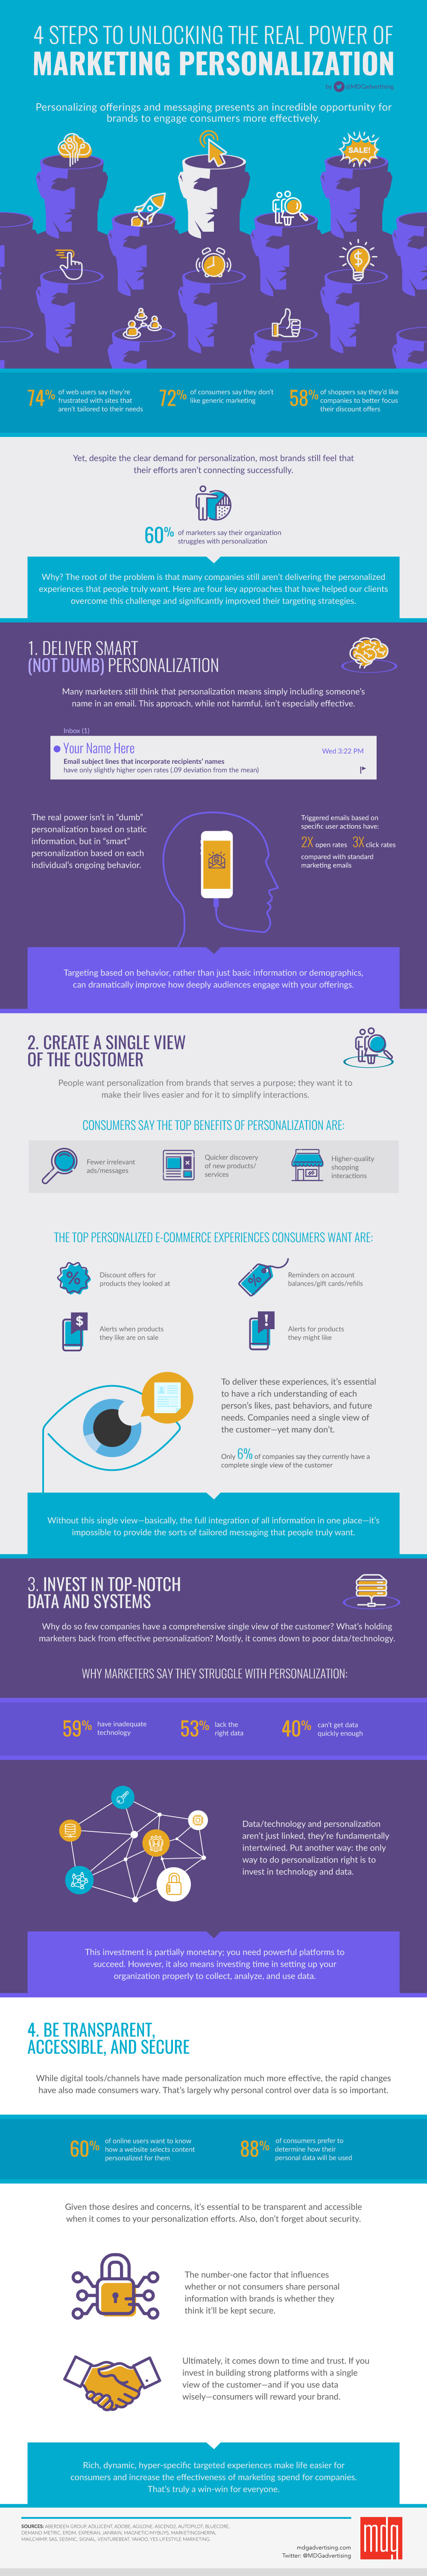 4 steps to unlocking the real power of marketing personalisation infographic